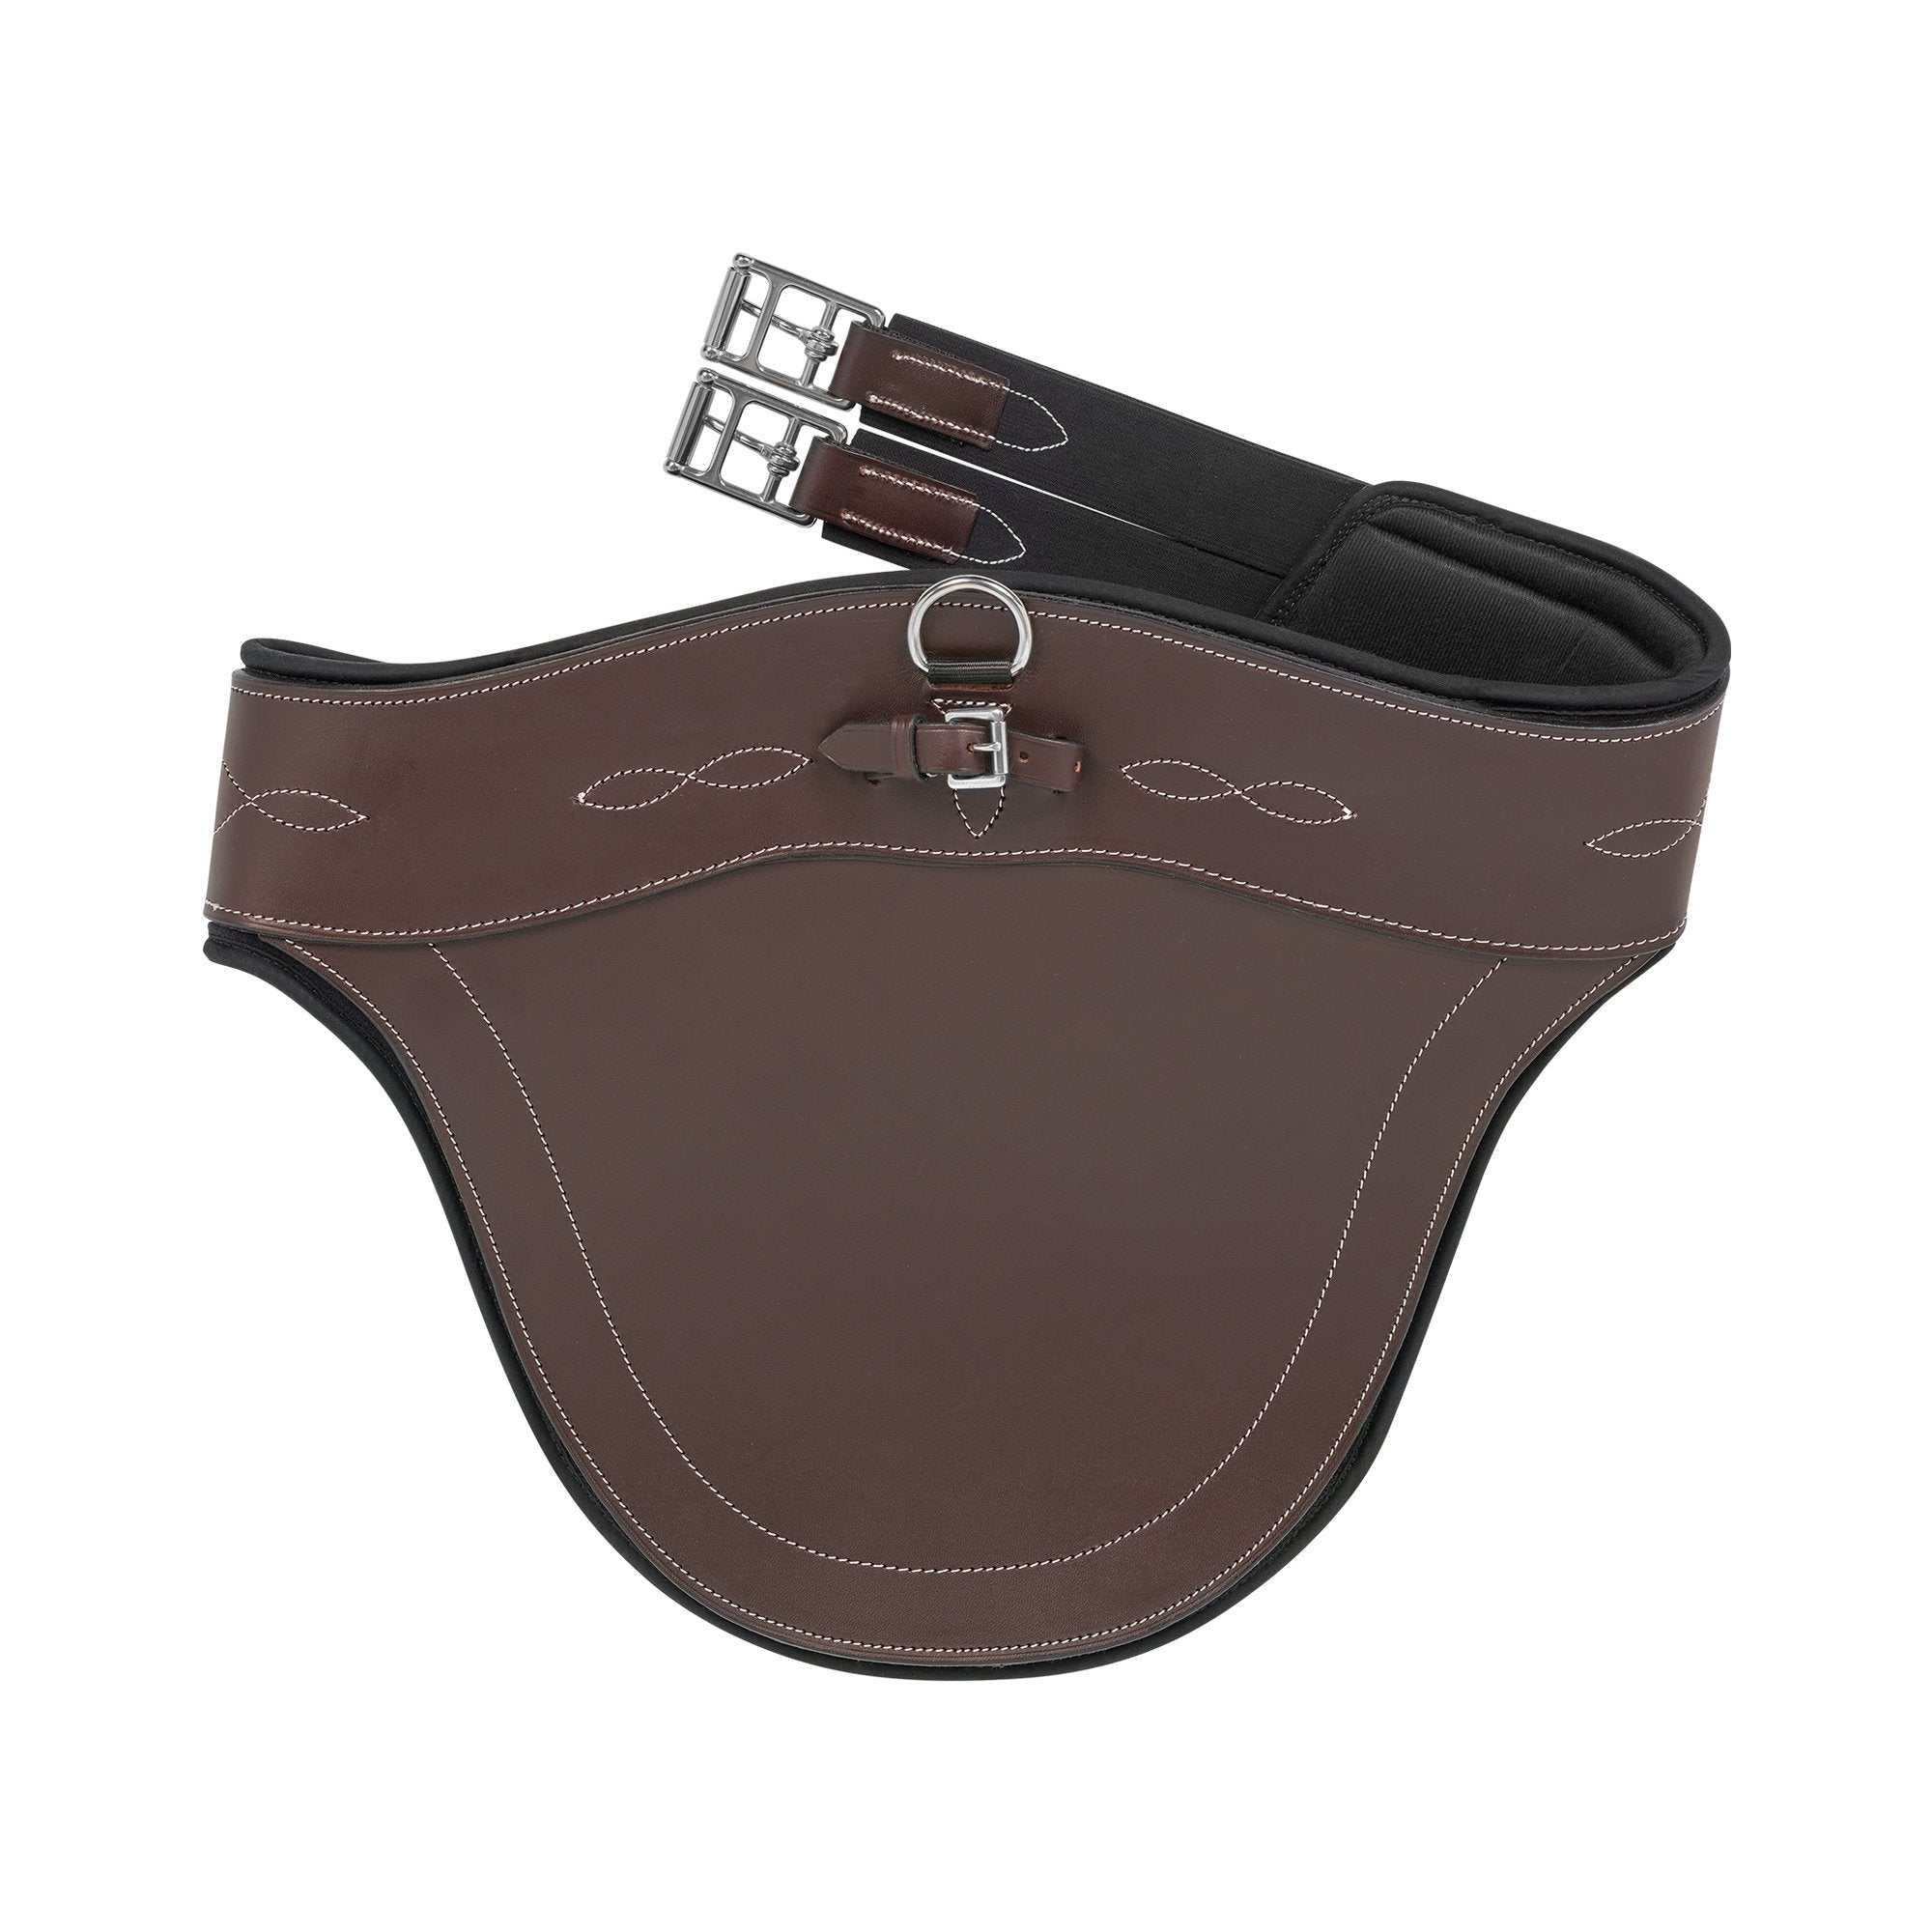 Equifit Anatomical Belly Guard Girth